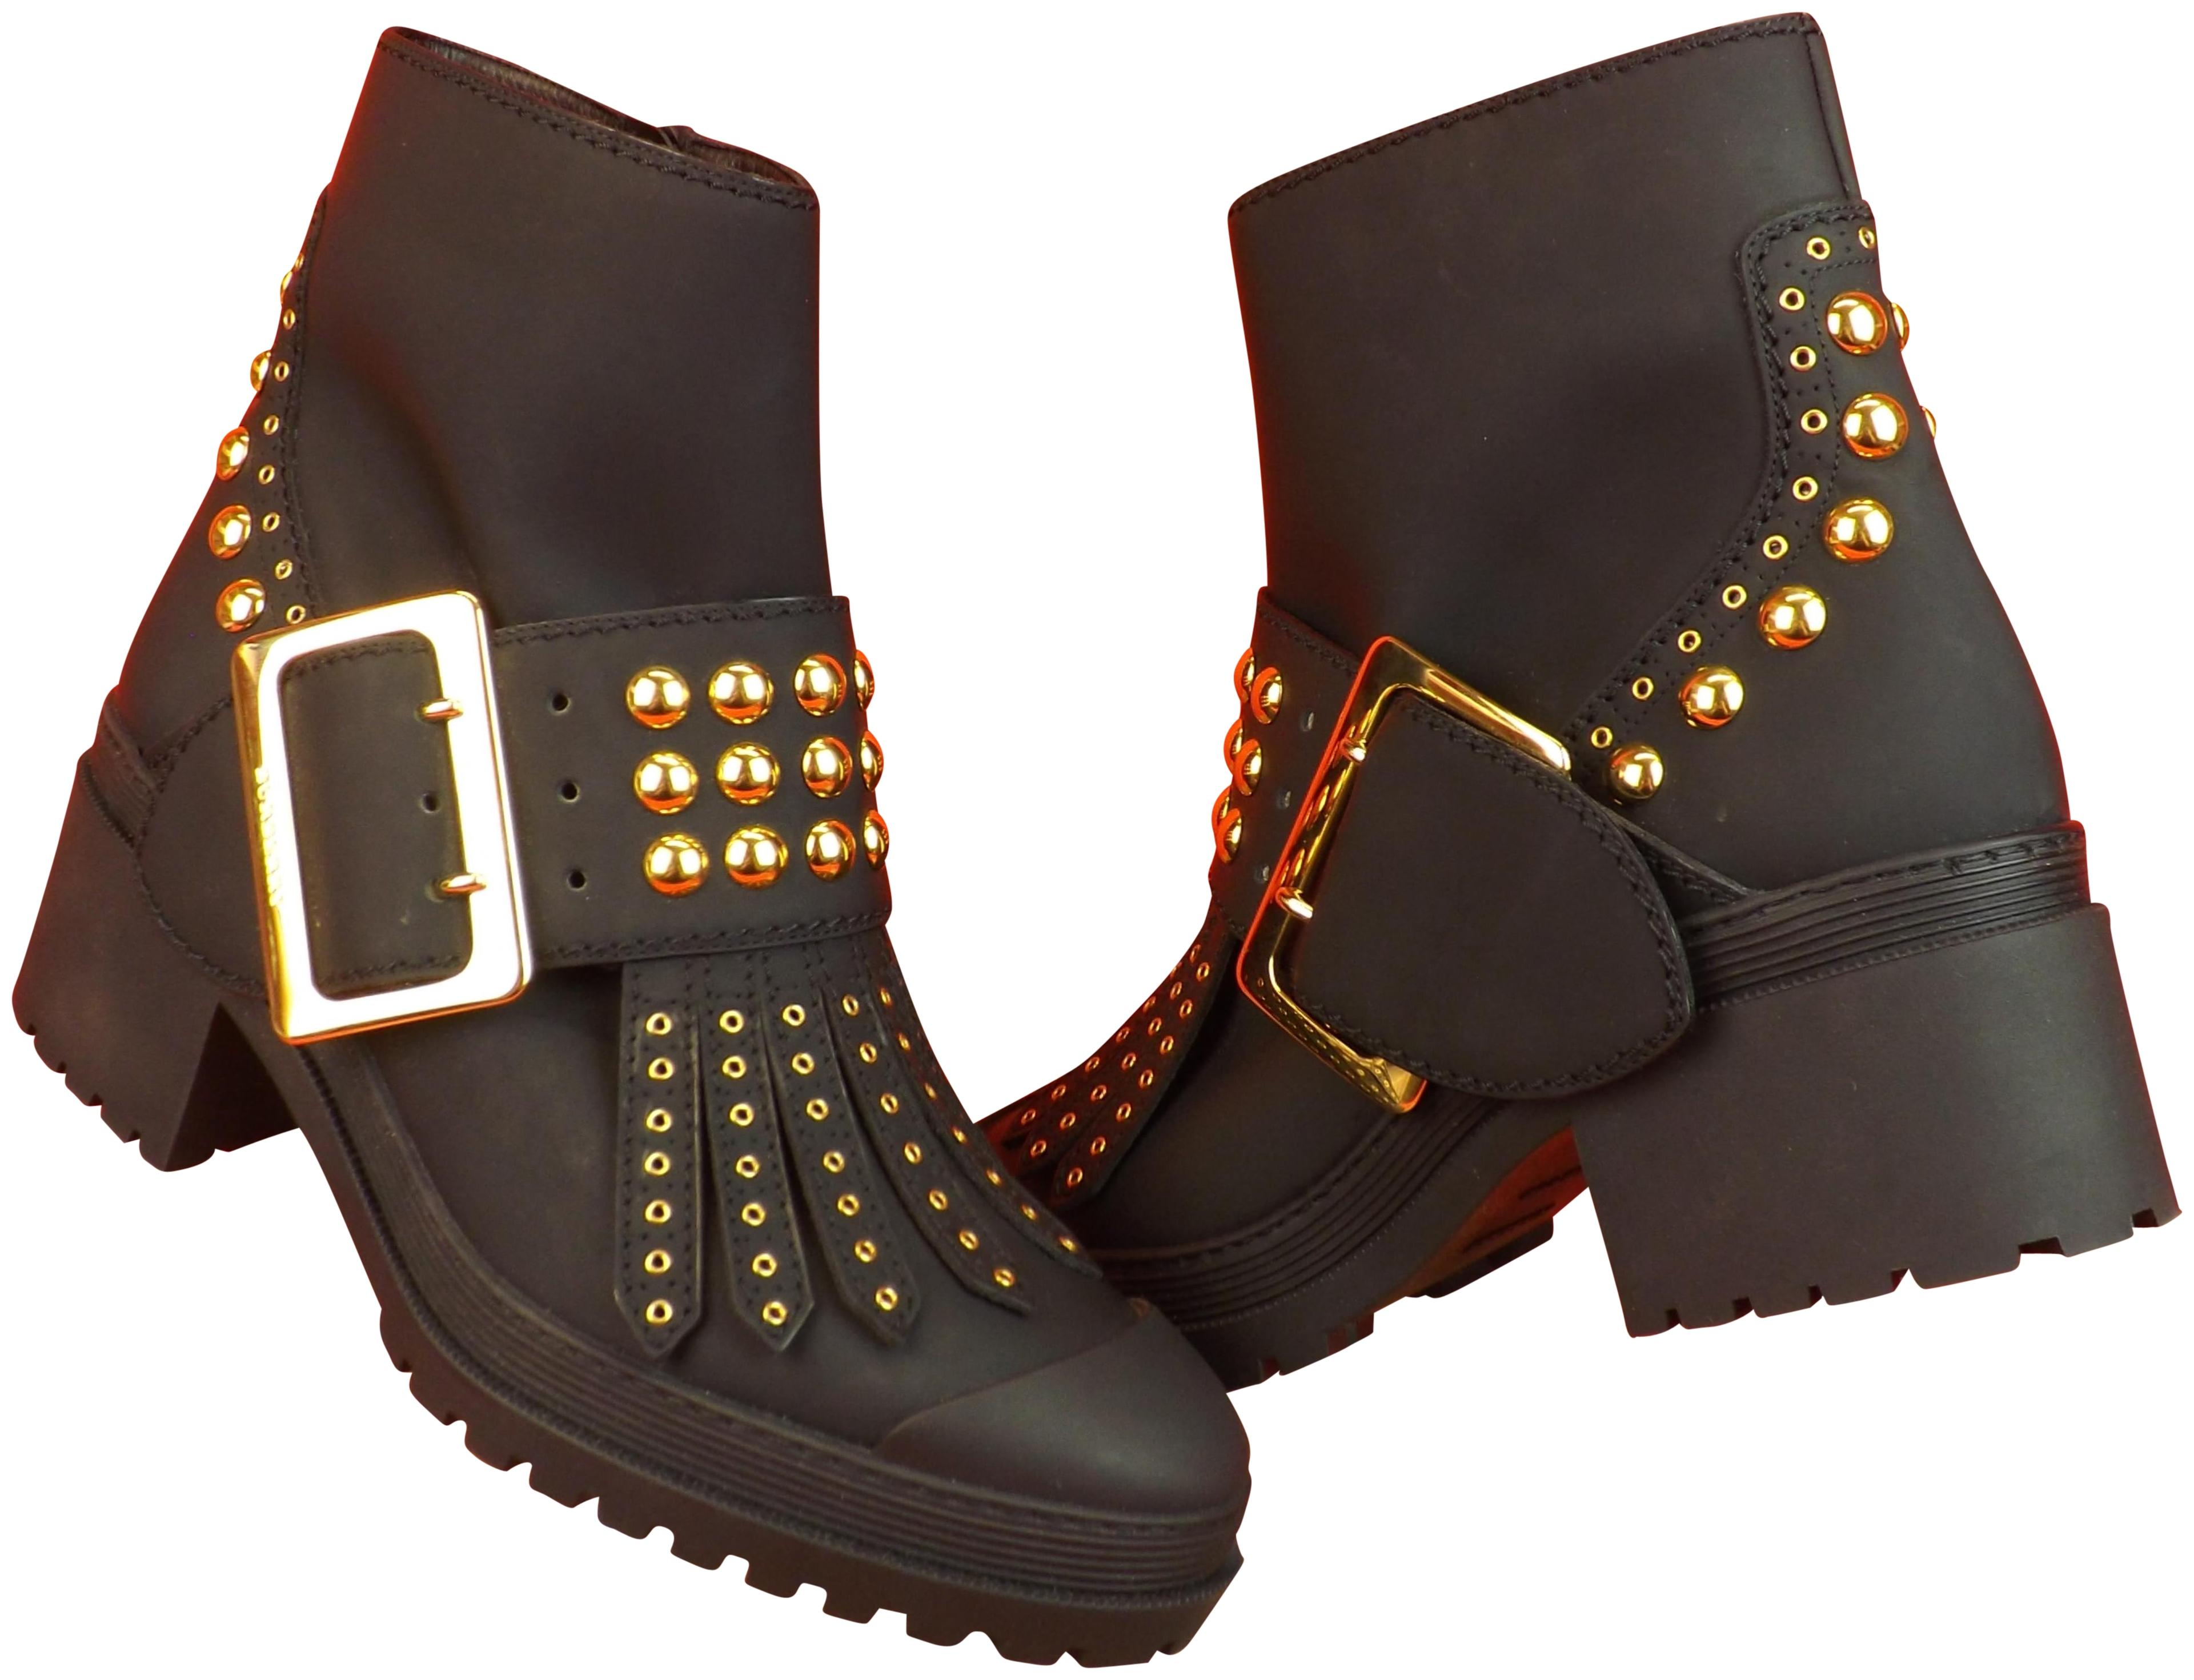 b341097b15c Burberry London Black Whitchester Whitchester Whitchester Oiled Leather  Fringe Gold Studded Belted Boots/Booties Size